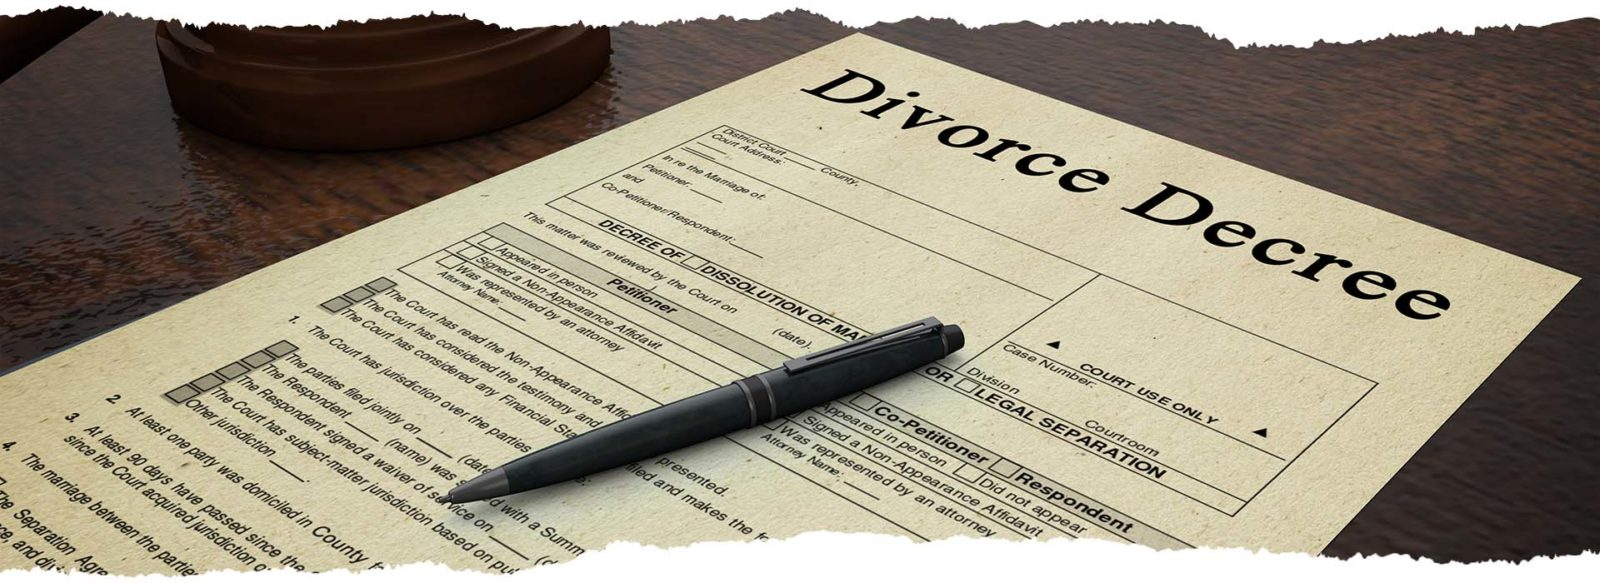 JK Financial Planning - Pre-Divorce Financial Planning